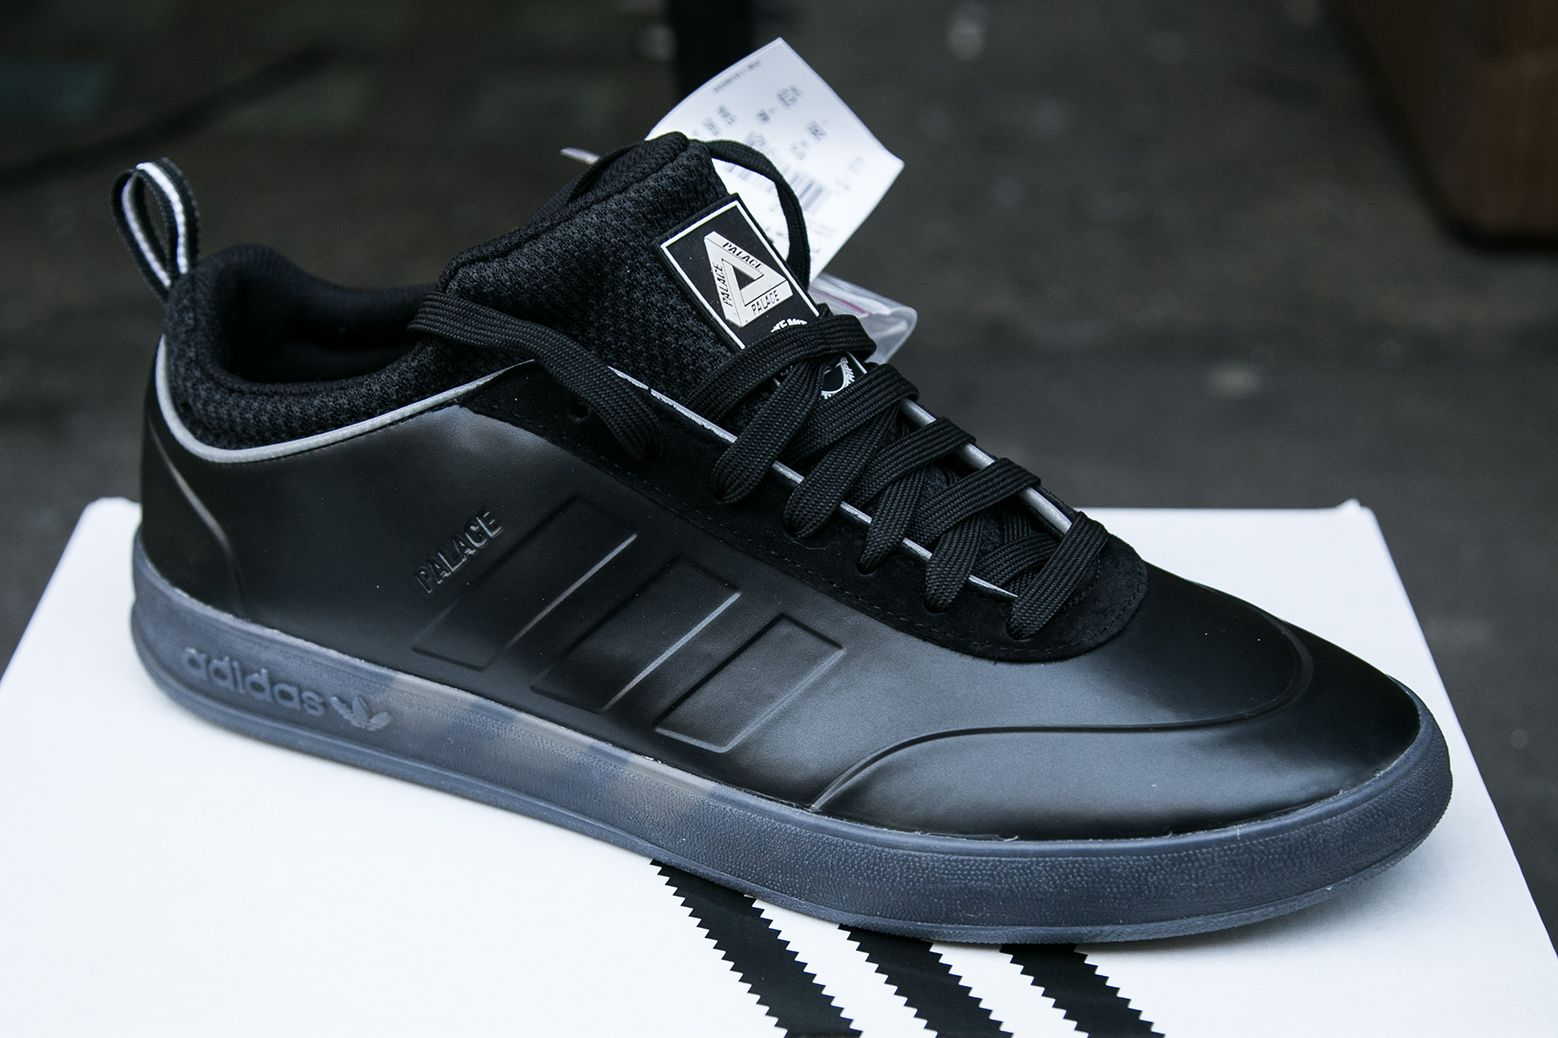 new products 24cad c1551 London Gets First Look at Palace x adidas Originals Latest Drop